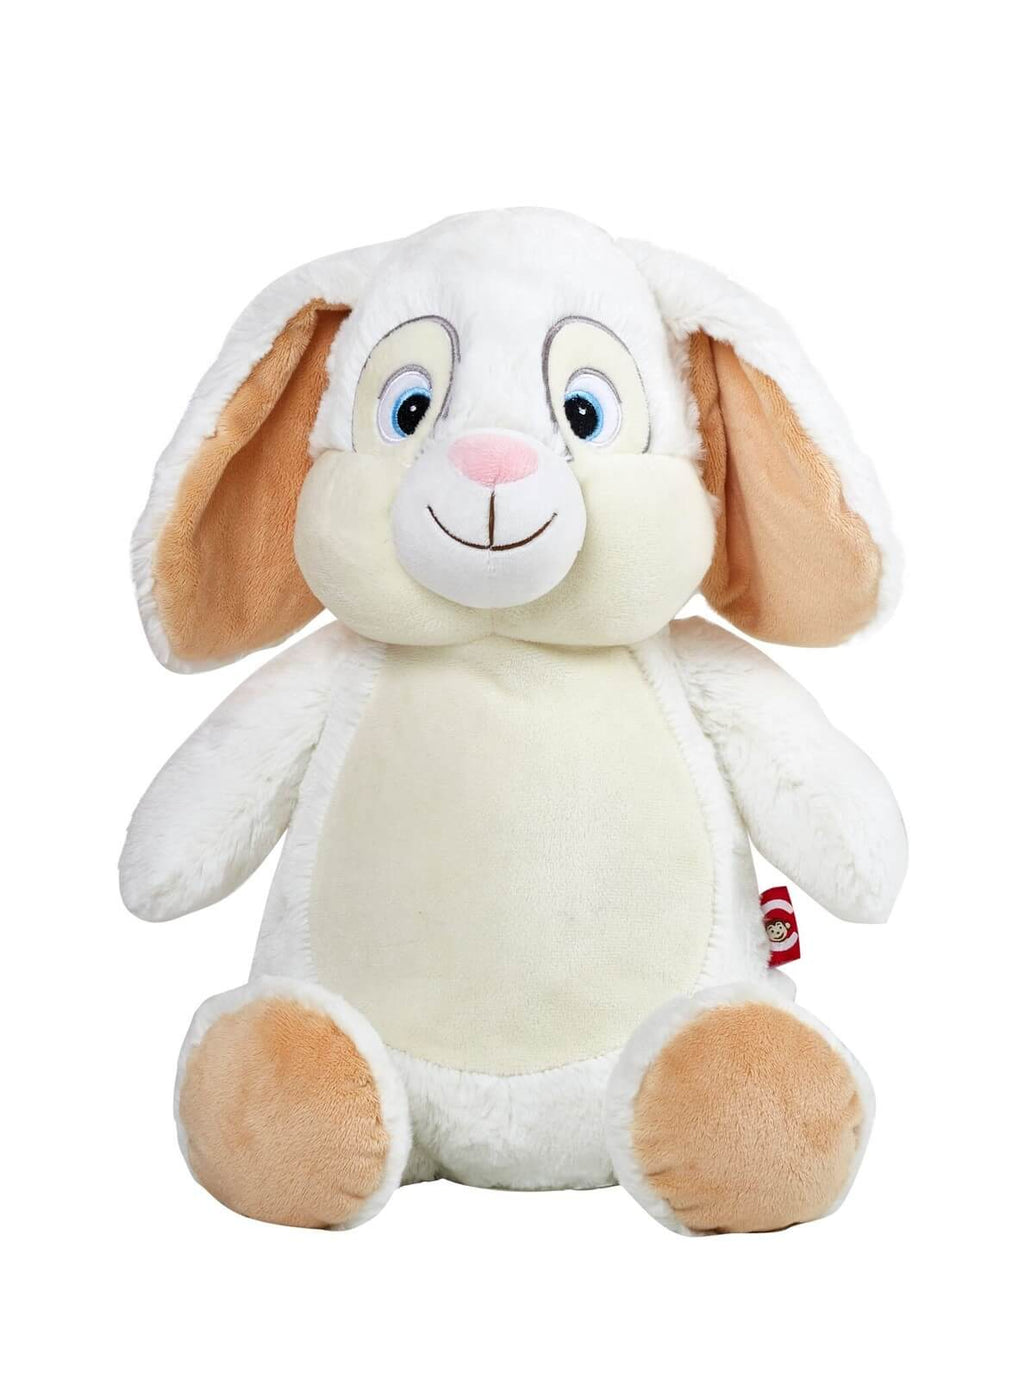 Personalised Teddy - Bunny White - D'lighted